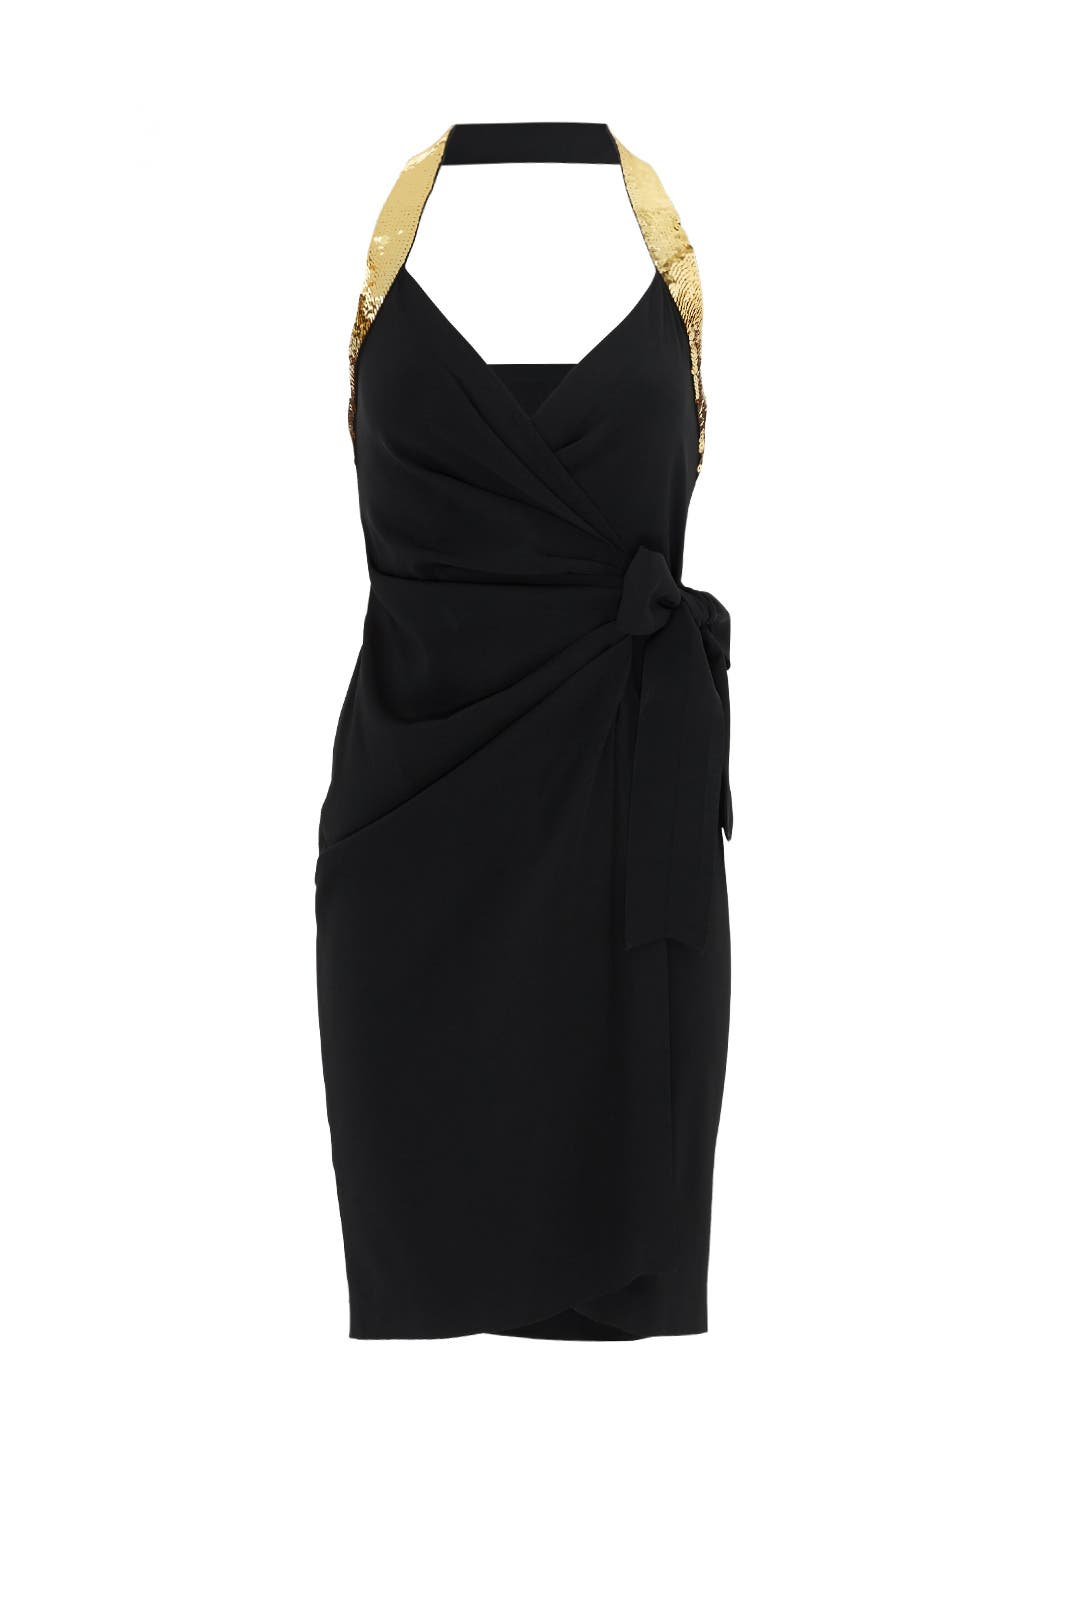 Status Symbol Dress by Moschino